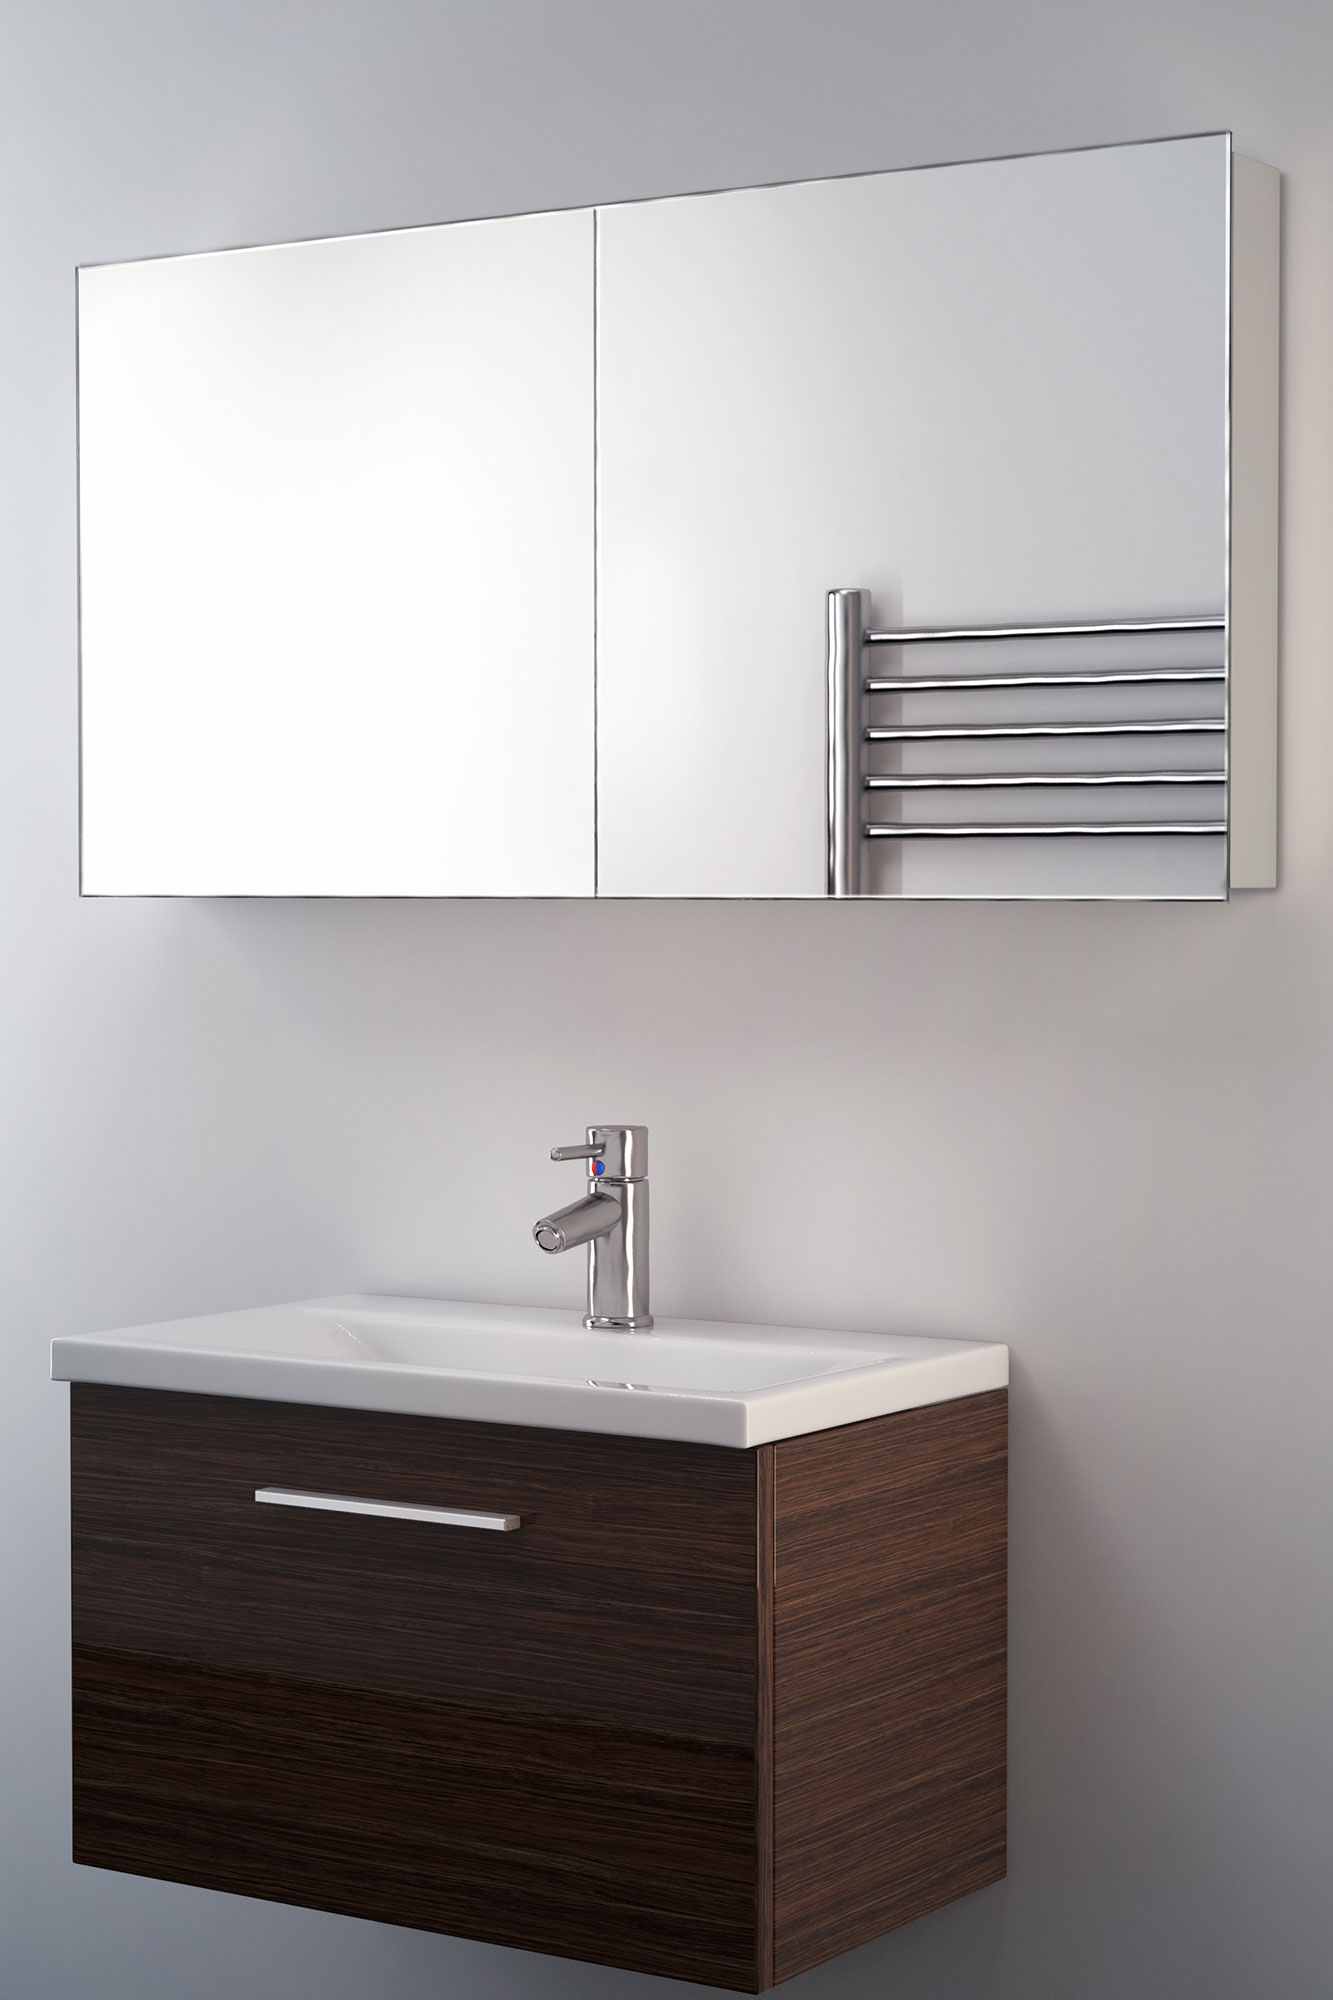 Bathroom Cabinet With Mirror Neptune Non Illuminated Bathroom Mirror Cabinet K140 Ebay